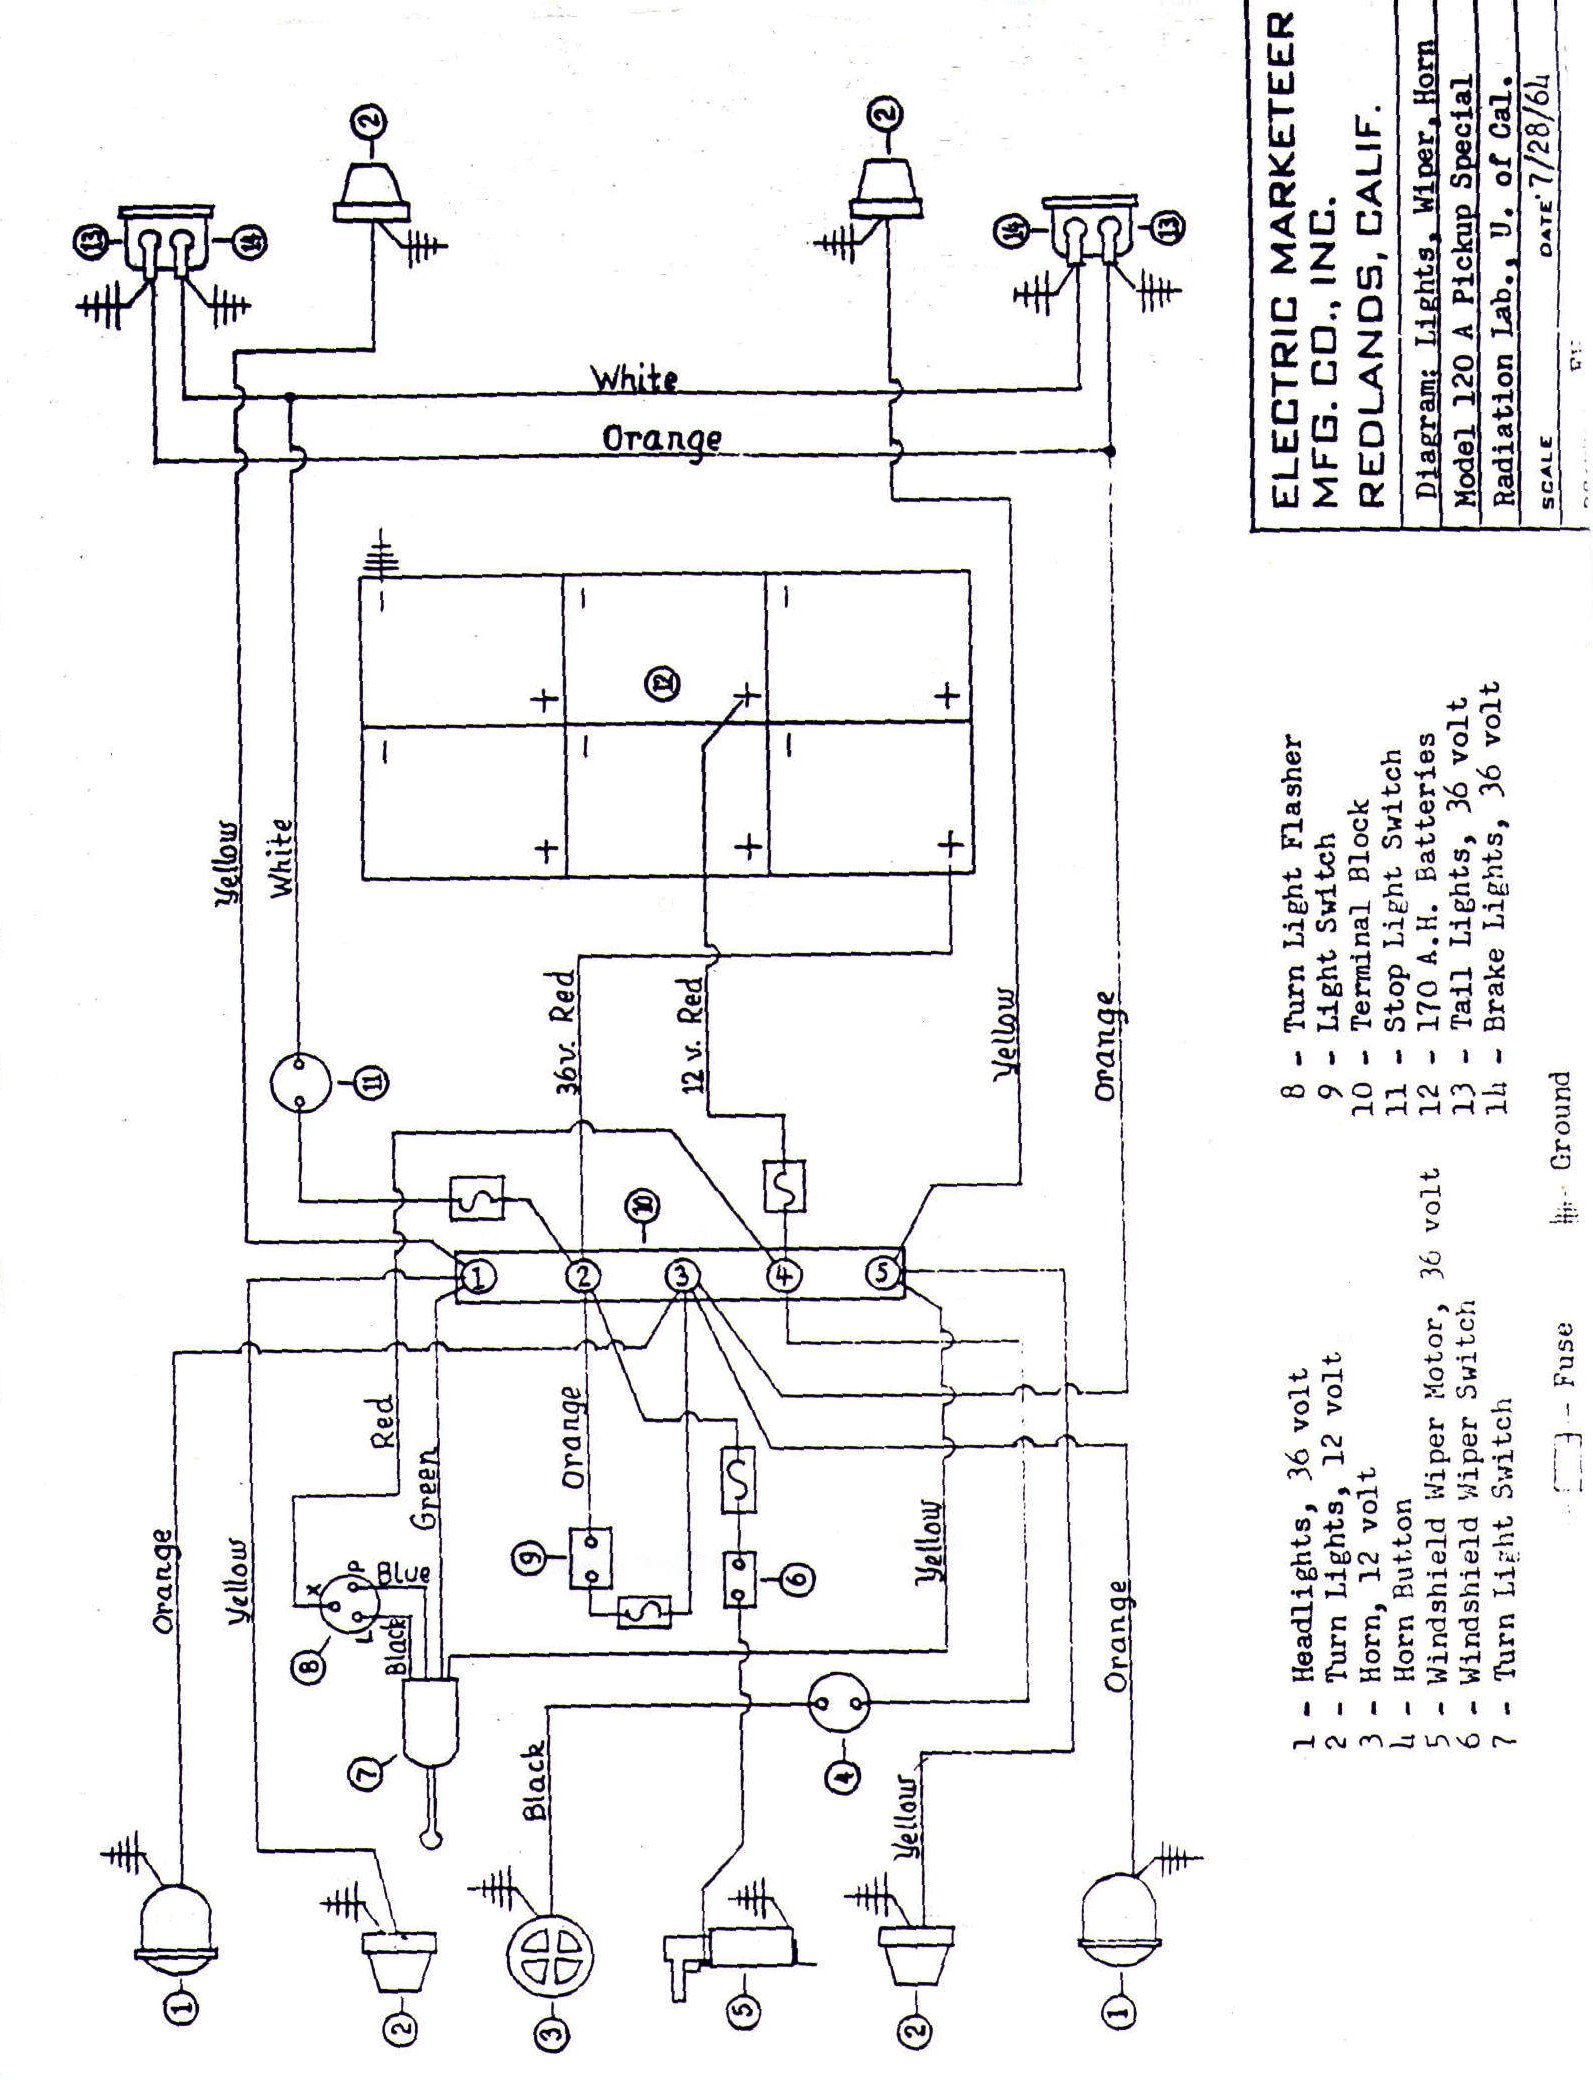 Markeeter_Wiring_Diagram_2 vintagegolfcartparts com westinghouse golf cart wiring diagram at aneh.co